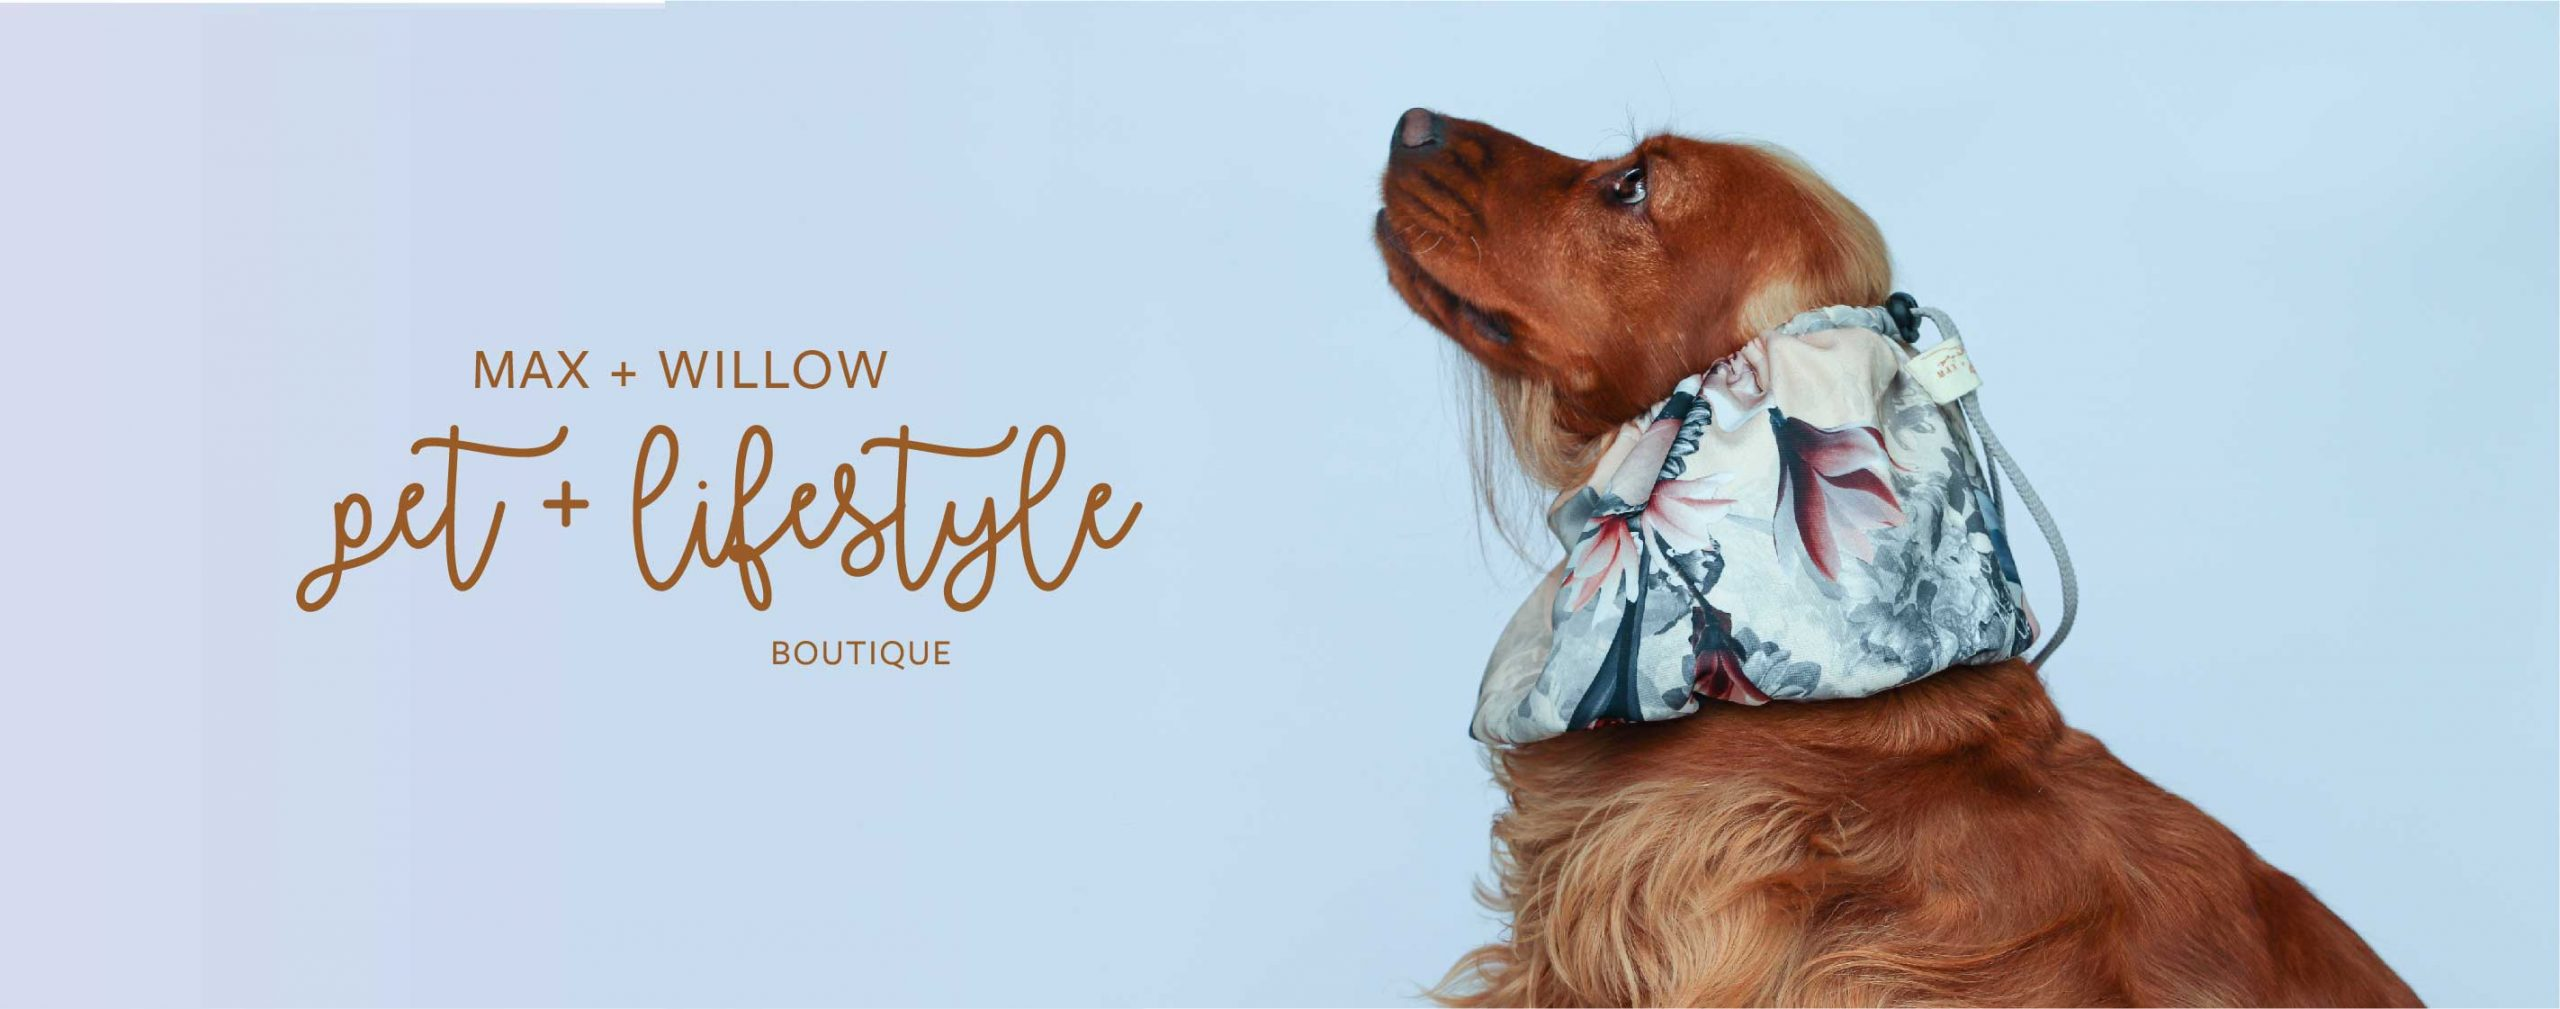 MAX_AND_WILLOW_PET_BOUTIQUE.jpg